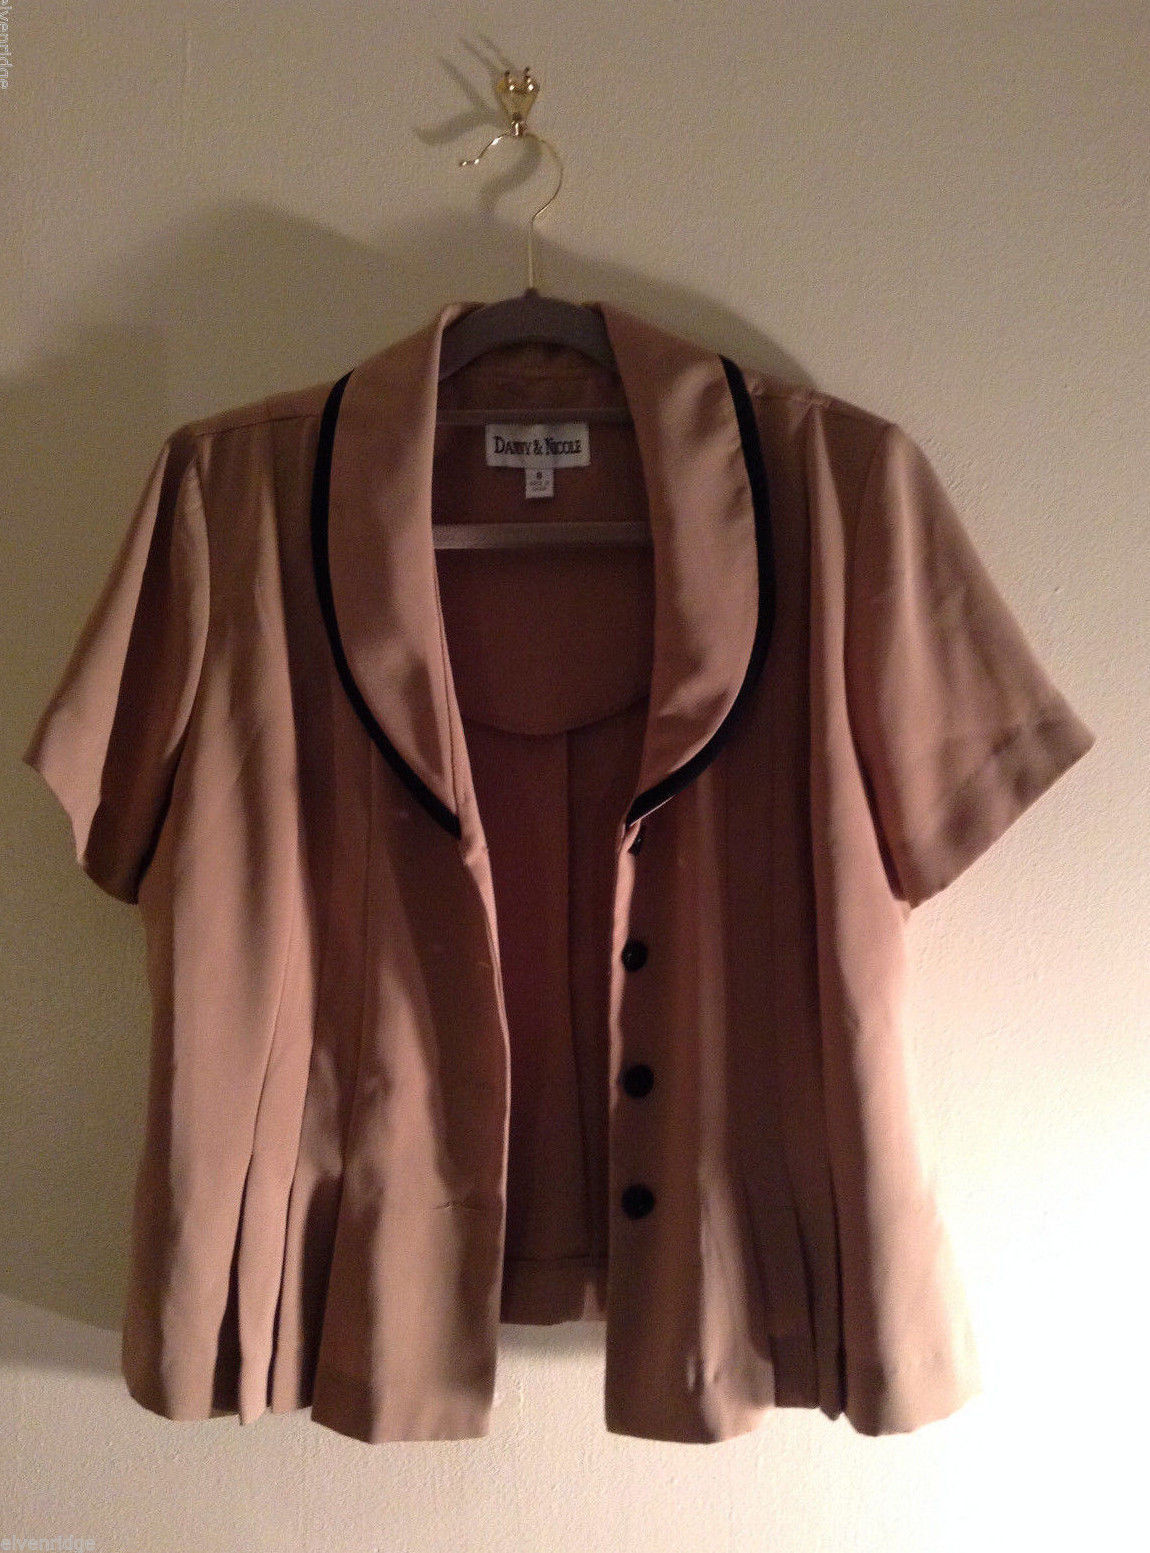 Danny & Nicole Women's Size 8 Suit Separate Top Tan w/ Black Trim, Fitted Darts